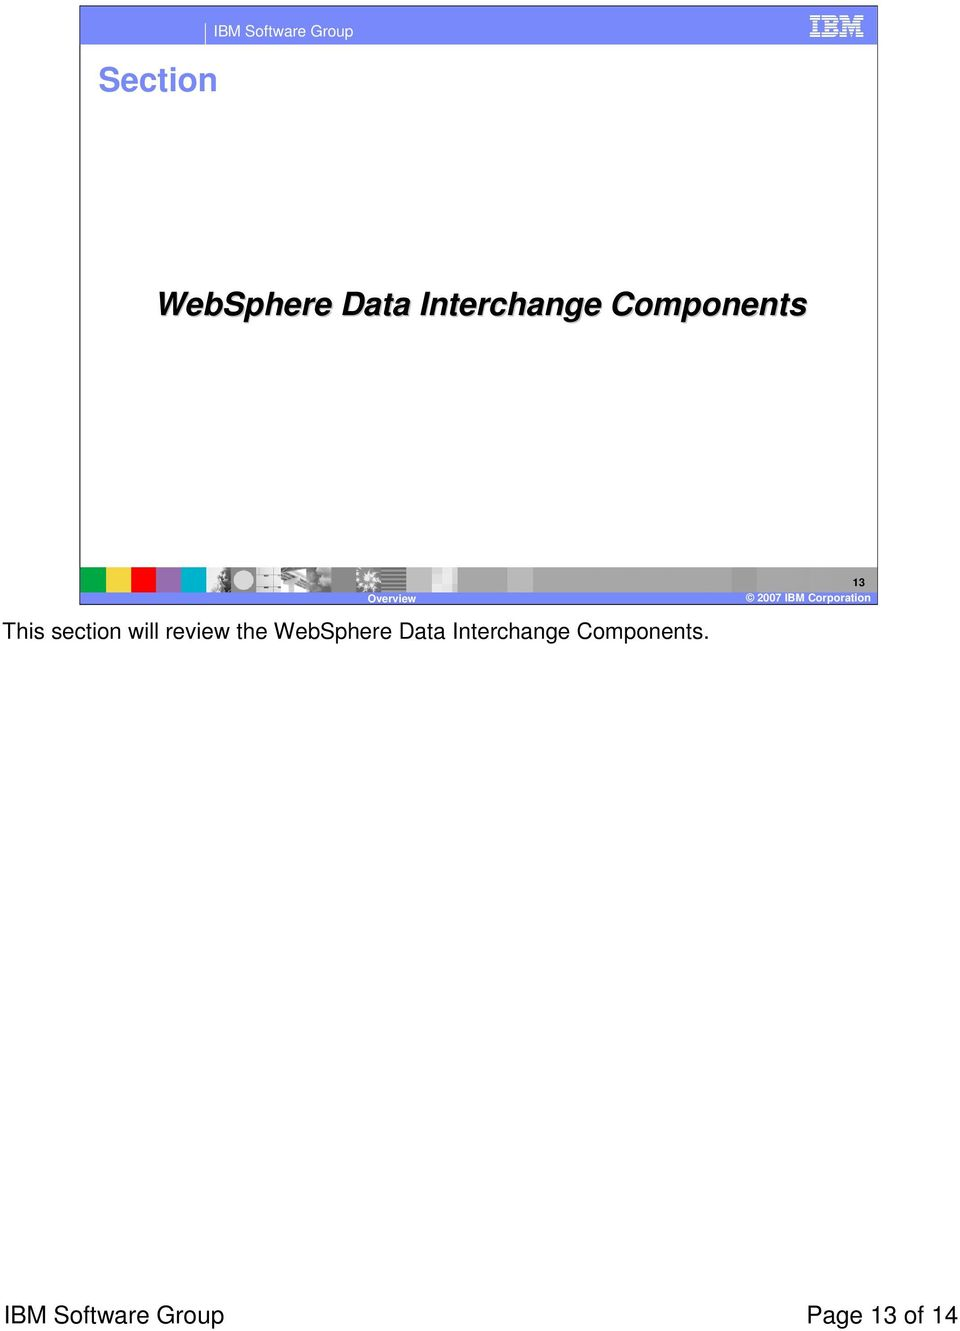 review the WebSphere Data Interchange